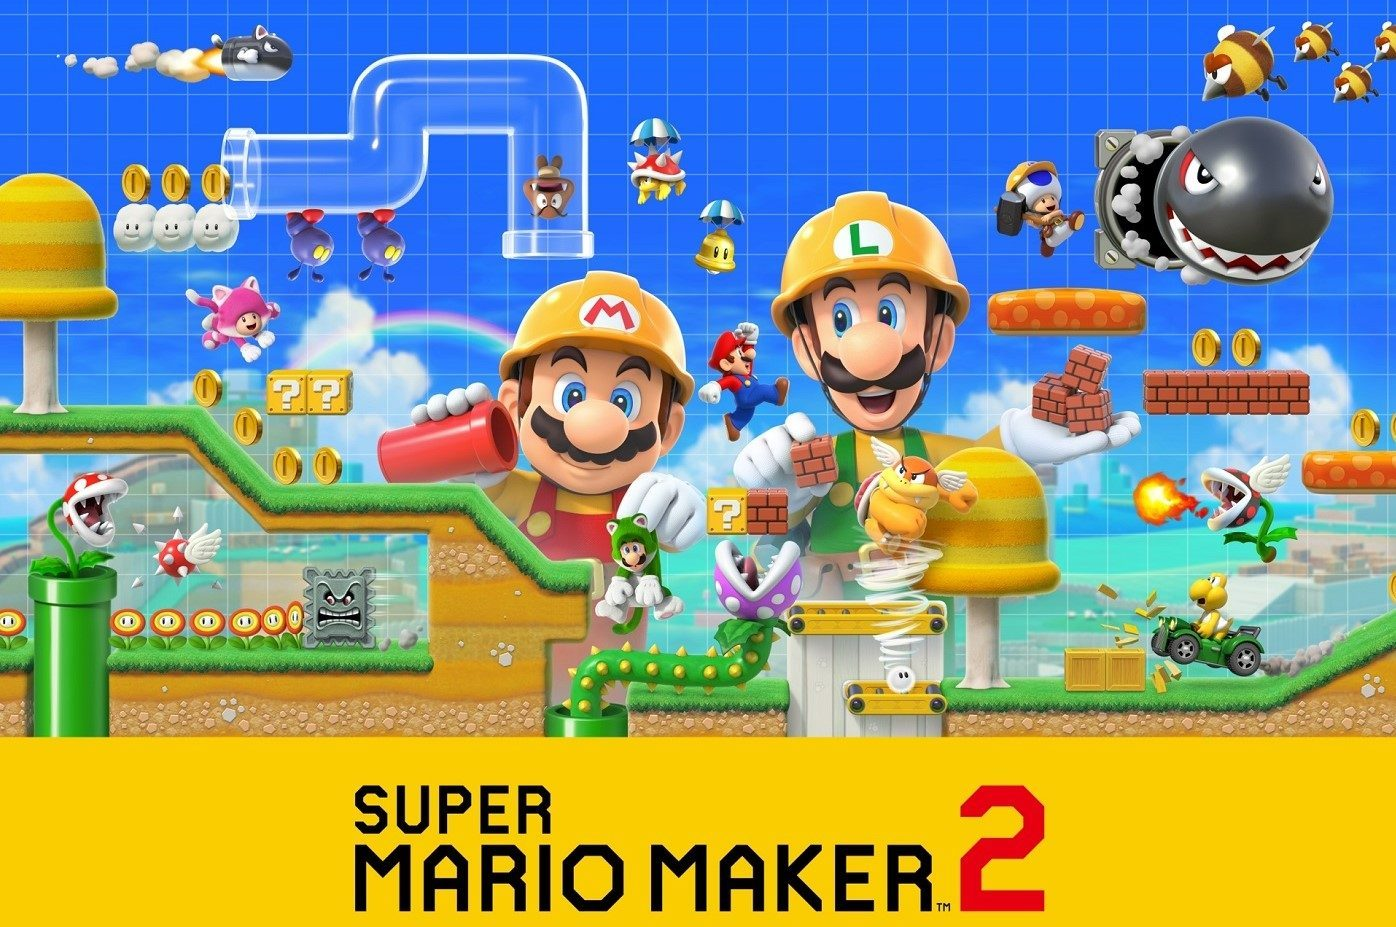 190214 NSW Super Mario Maker 2 Illustrationt HACP BAAQ WWillu01 02 R ad 0